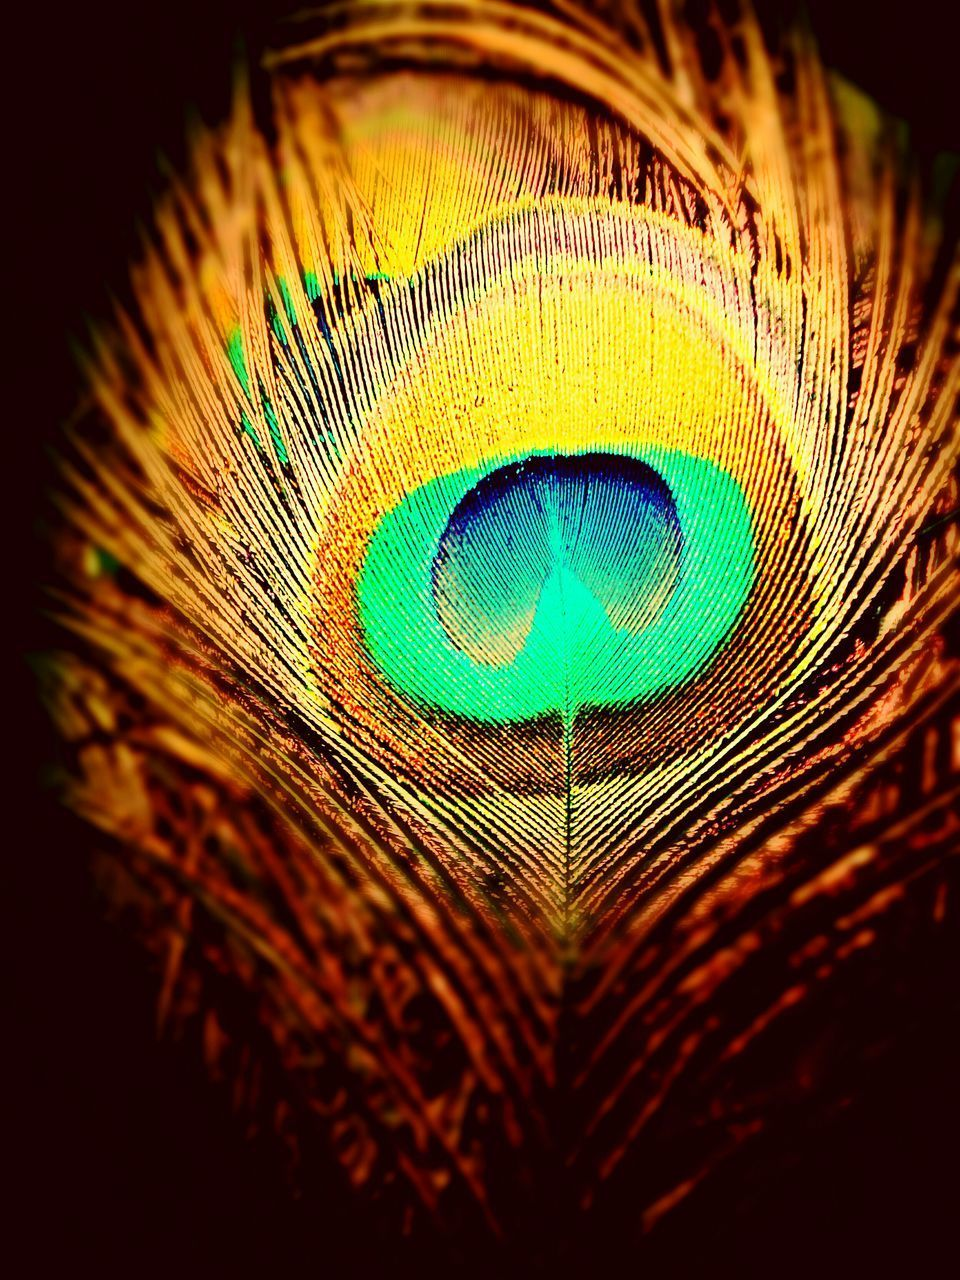 peacock, peacock feather, feather, close-up, fragility, lightweight, softness, no people, fanned out, bird, blue, beauty in nature, backgrounds, studio shot, nature, multi colored, full frame, black background, animal themes, beauty, vanity, outdoors, day